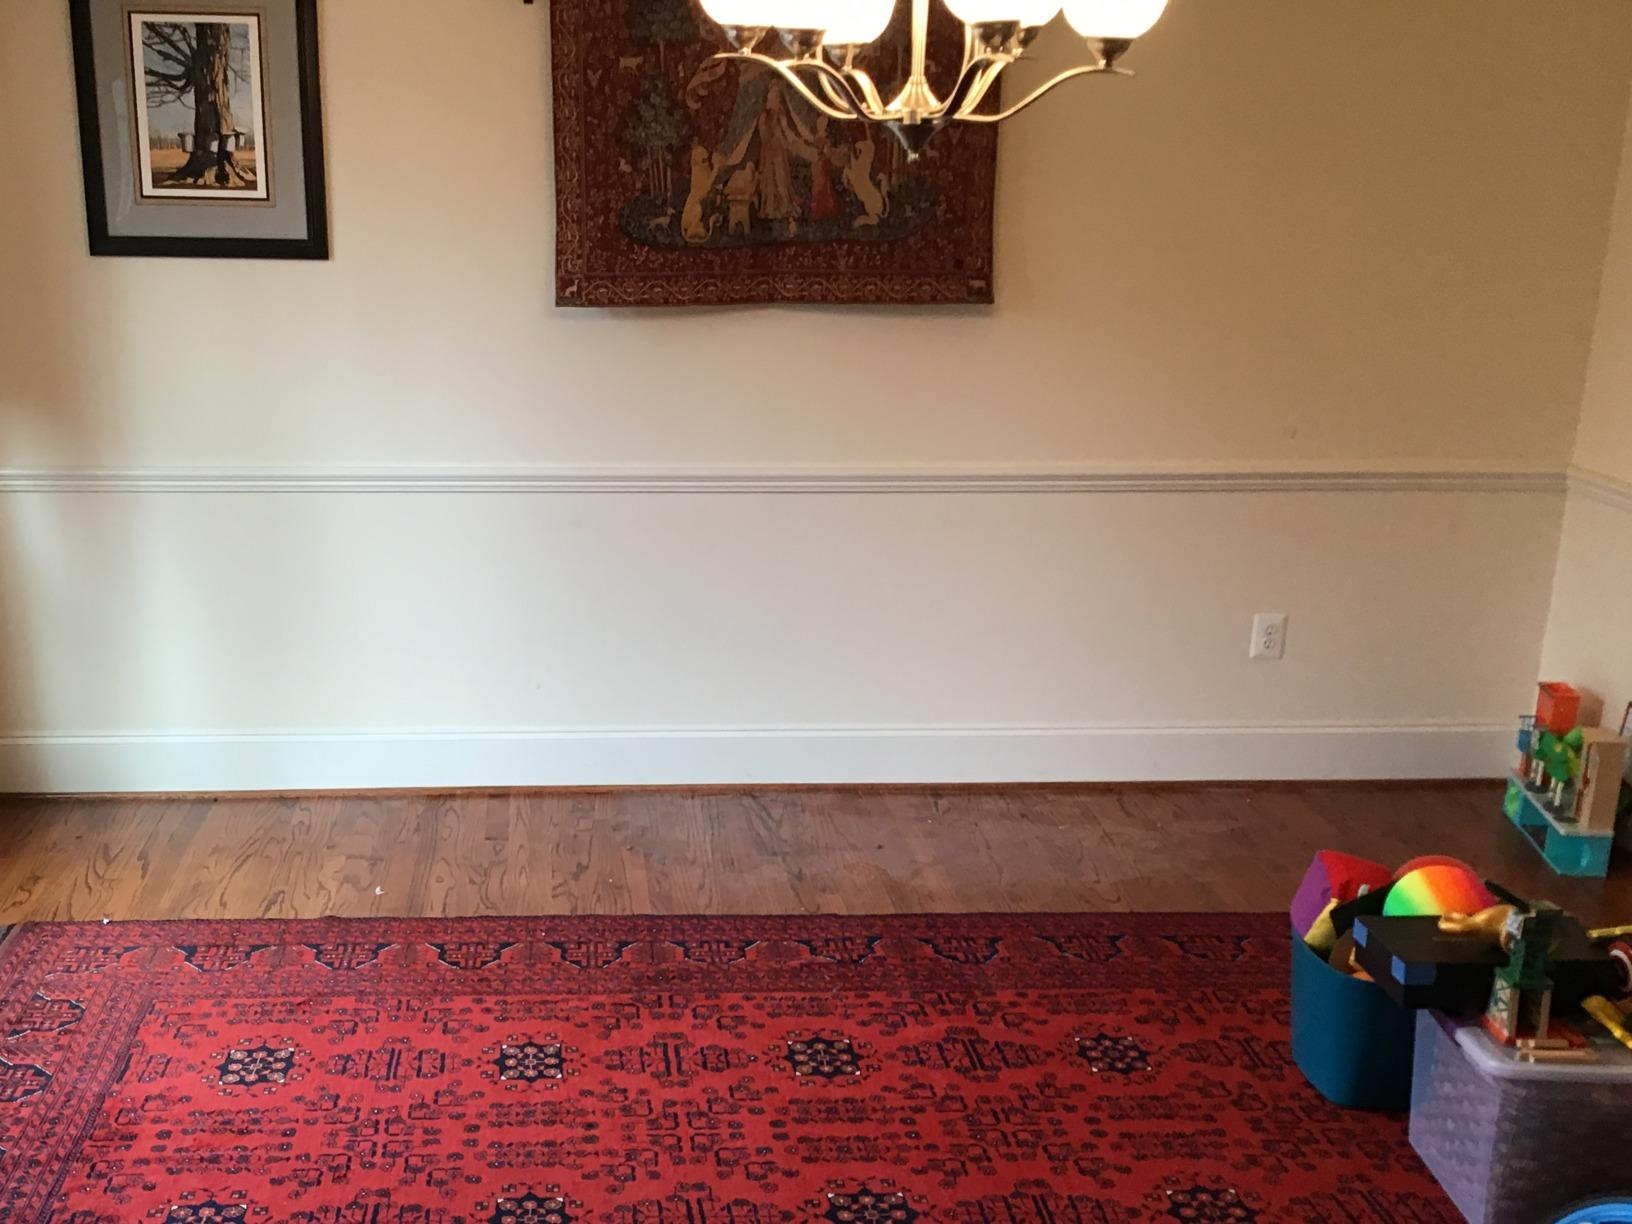 Furniture Removal & Donation in Haymarket, VA - After Photo